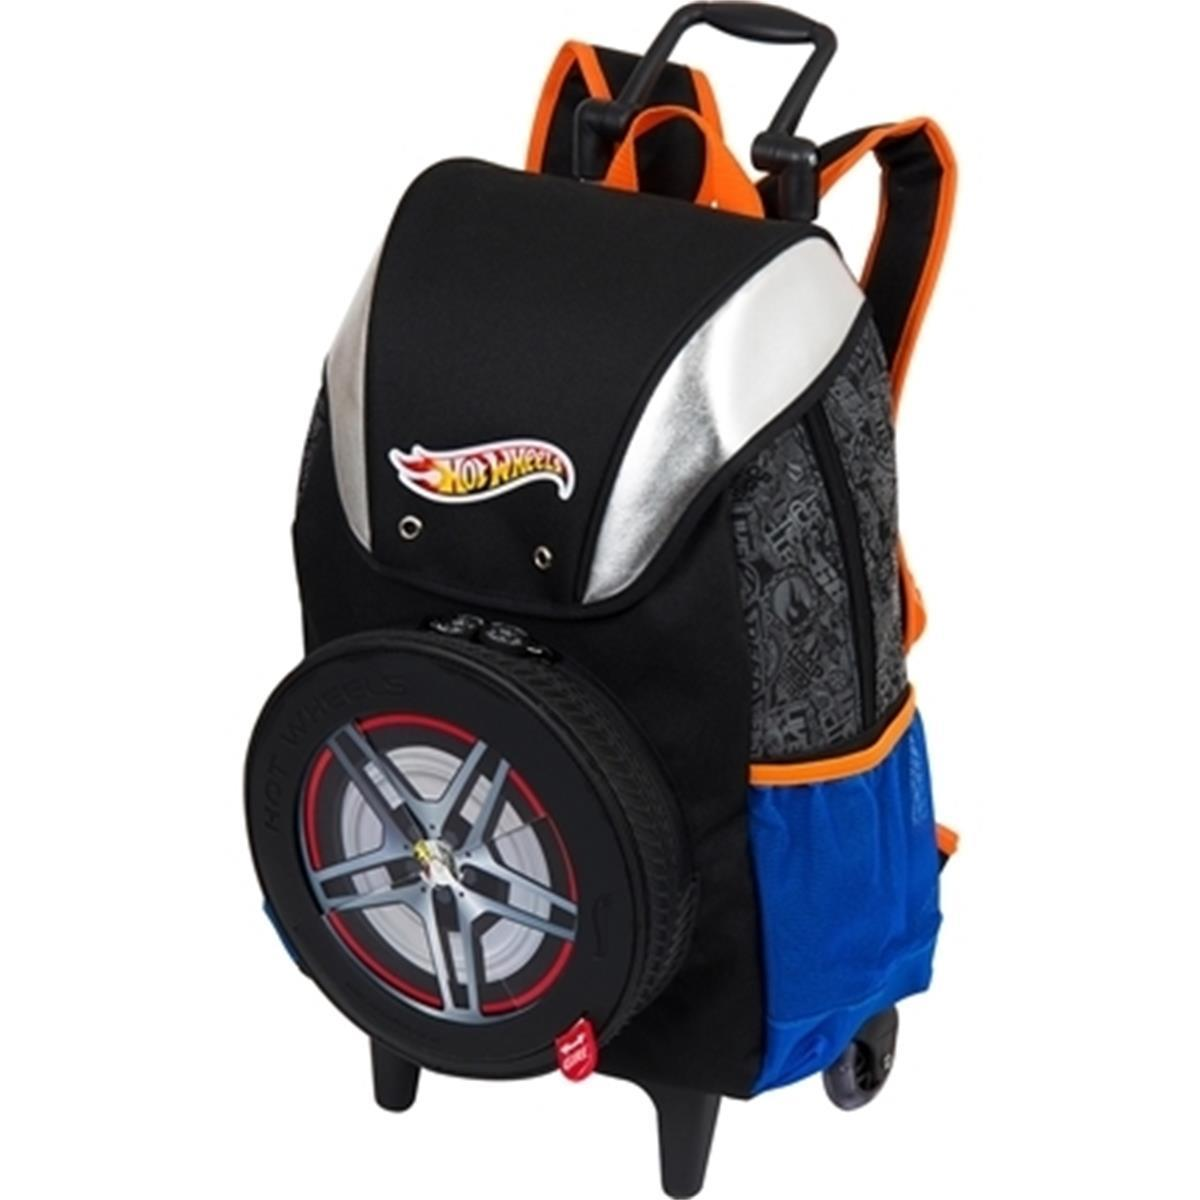 85a8e2e493 Mochila Hot Wheels Grande 06310000 Sestini